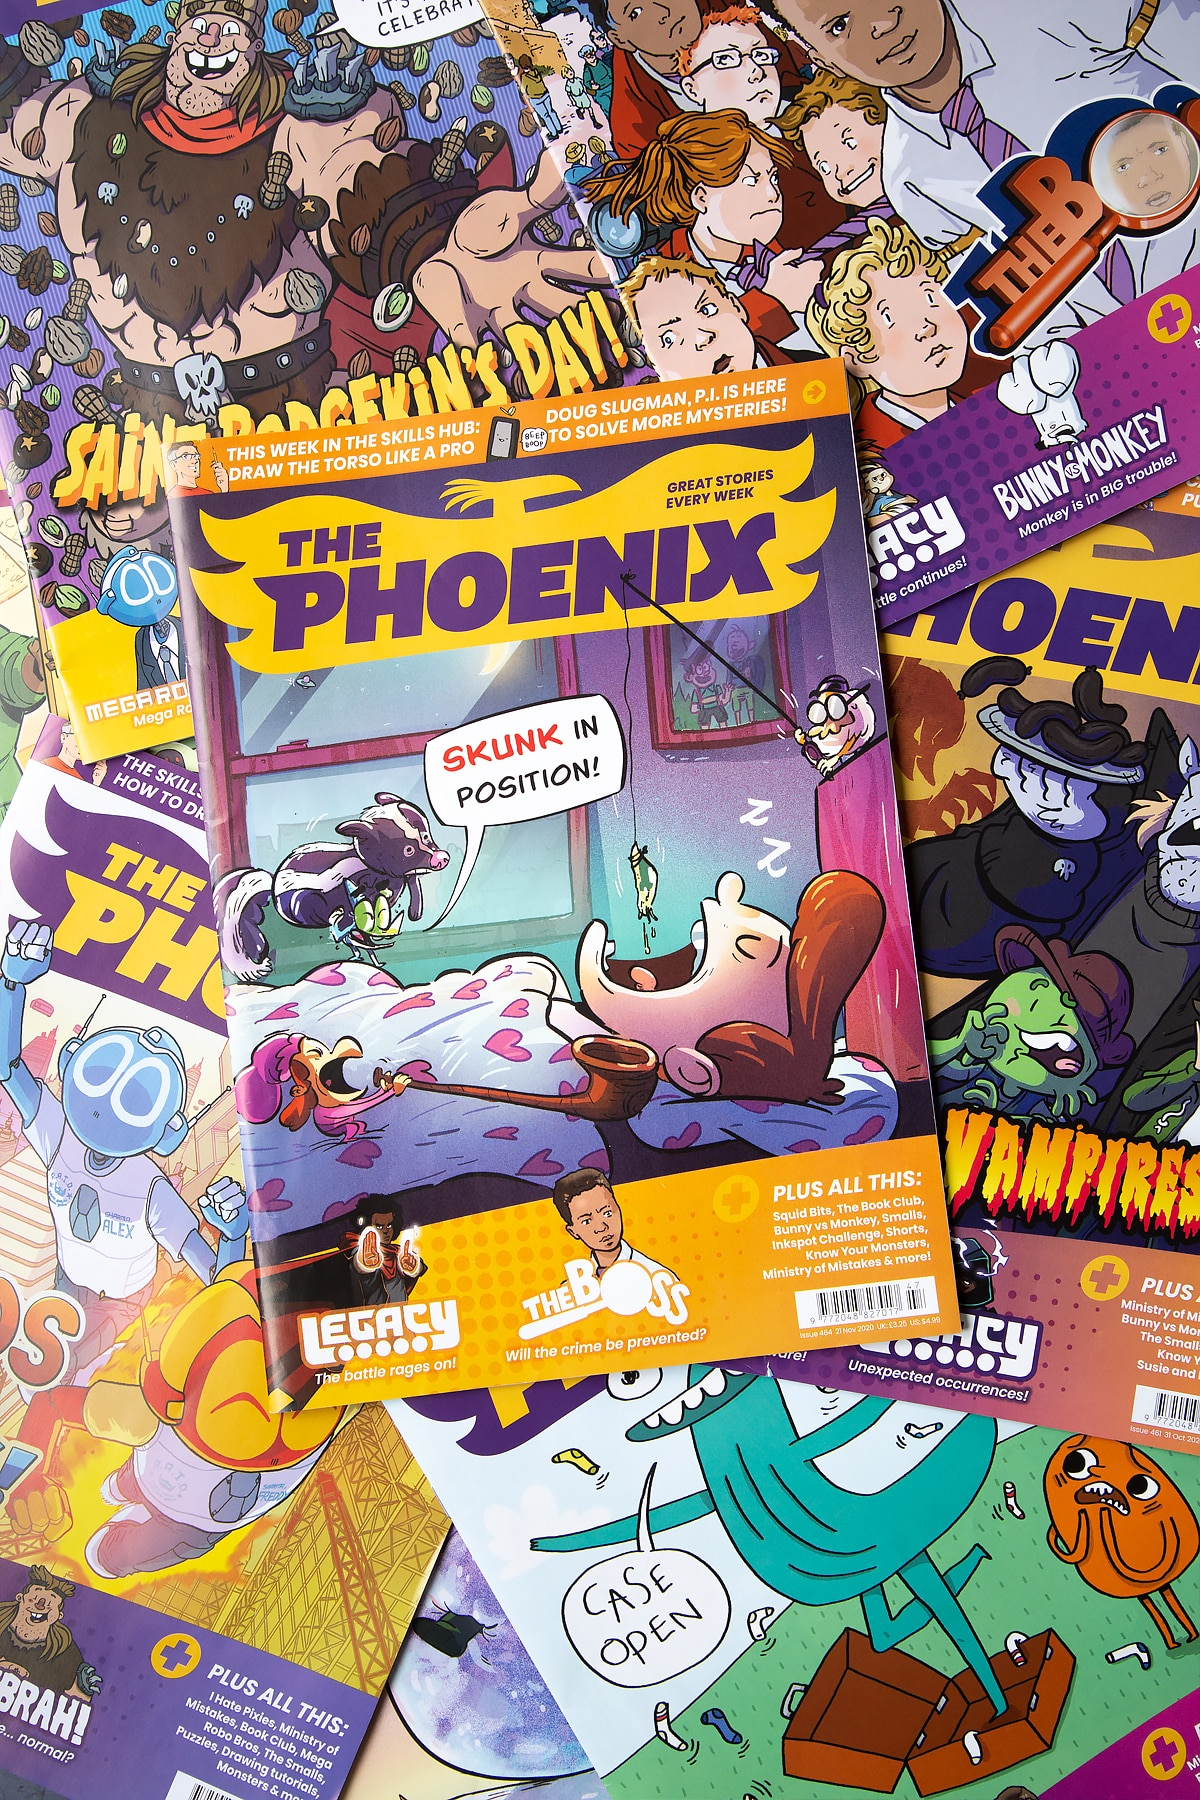 Overhead shot of The Phoenix magazine on a backdrop of other animated magazines